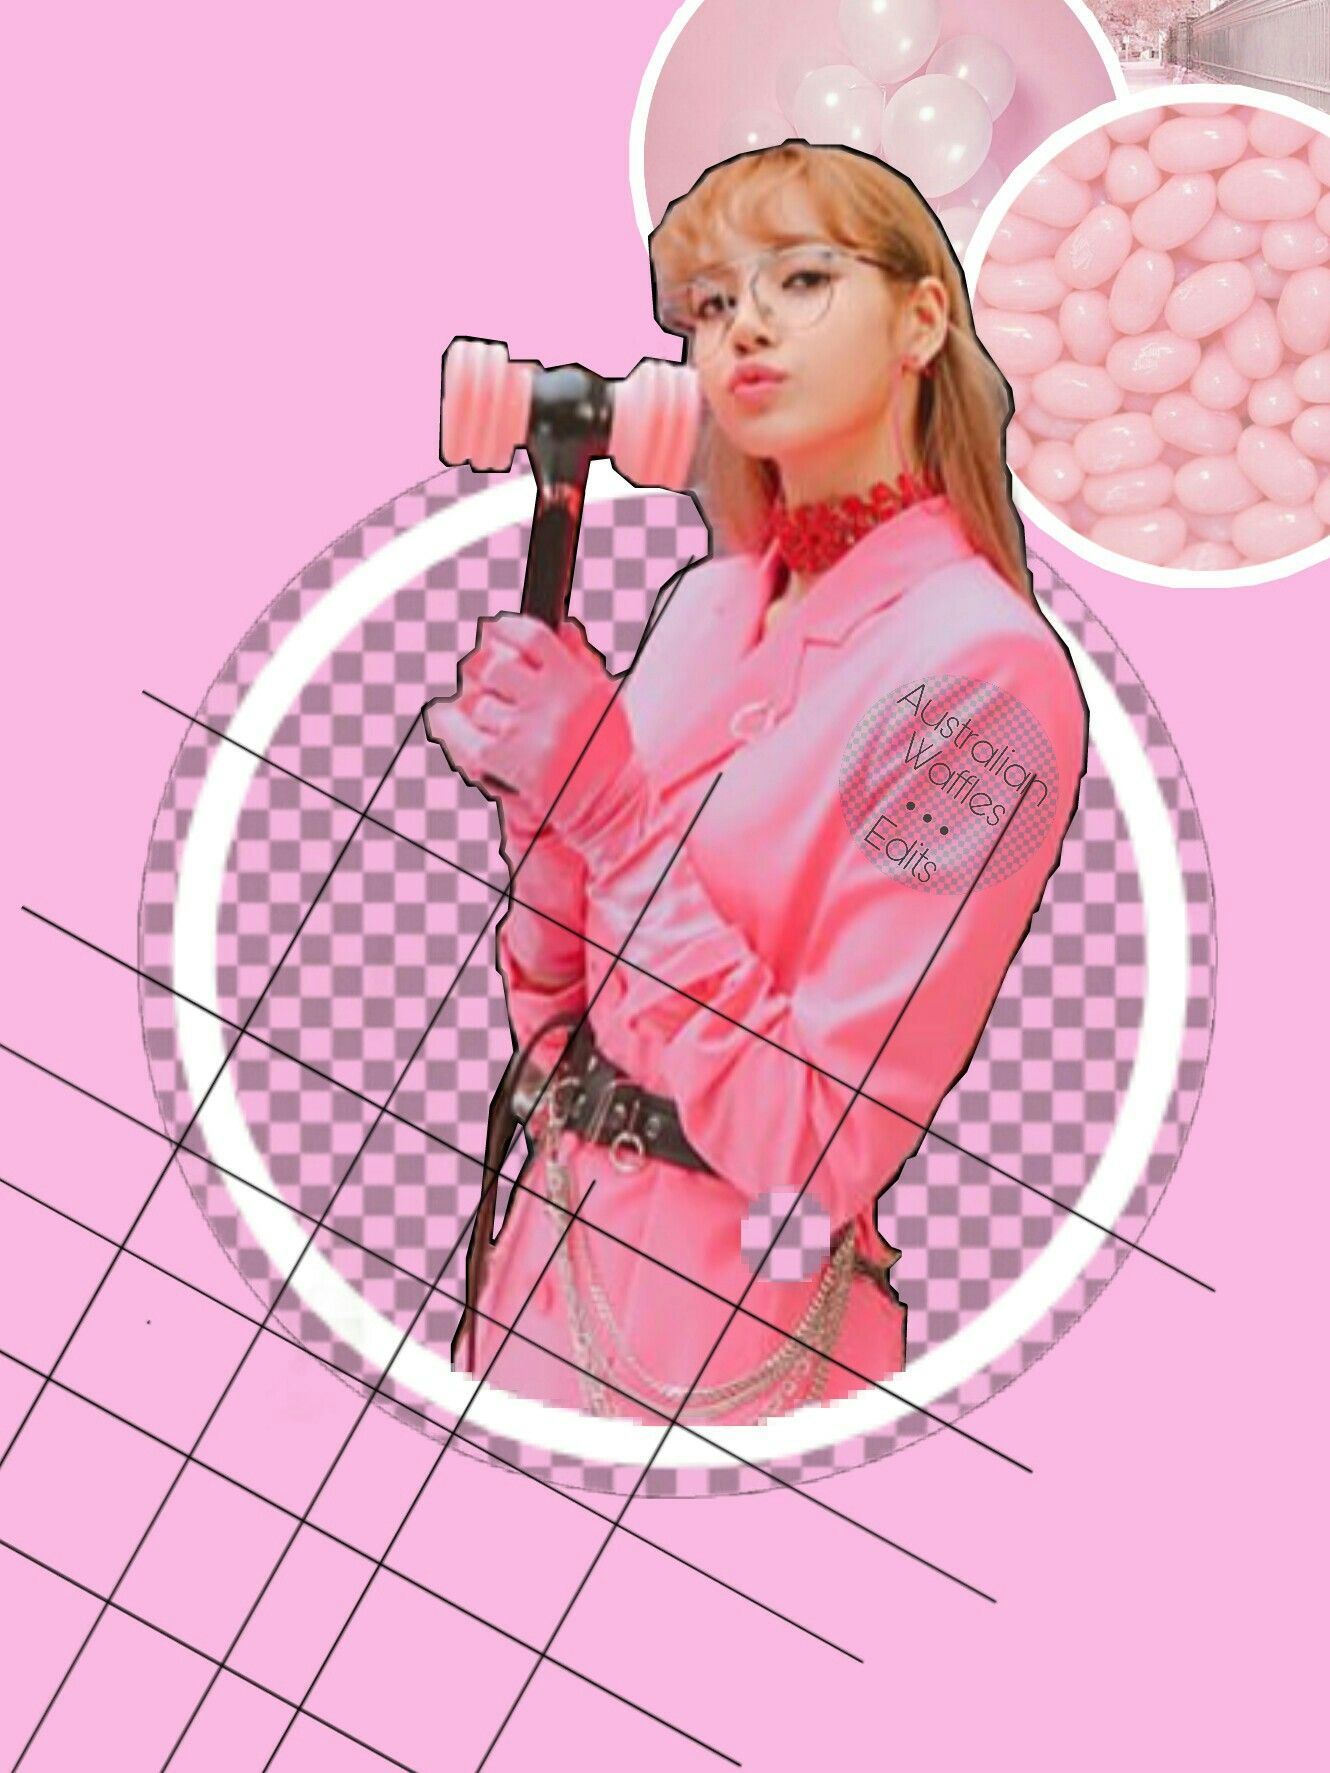 Lisa Wallpaper From Amino Made On Android I M Not Sure If It Would